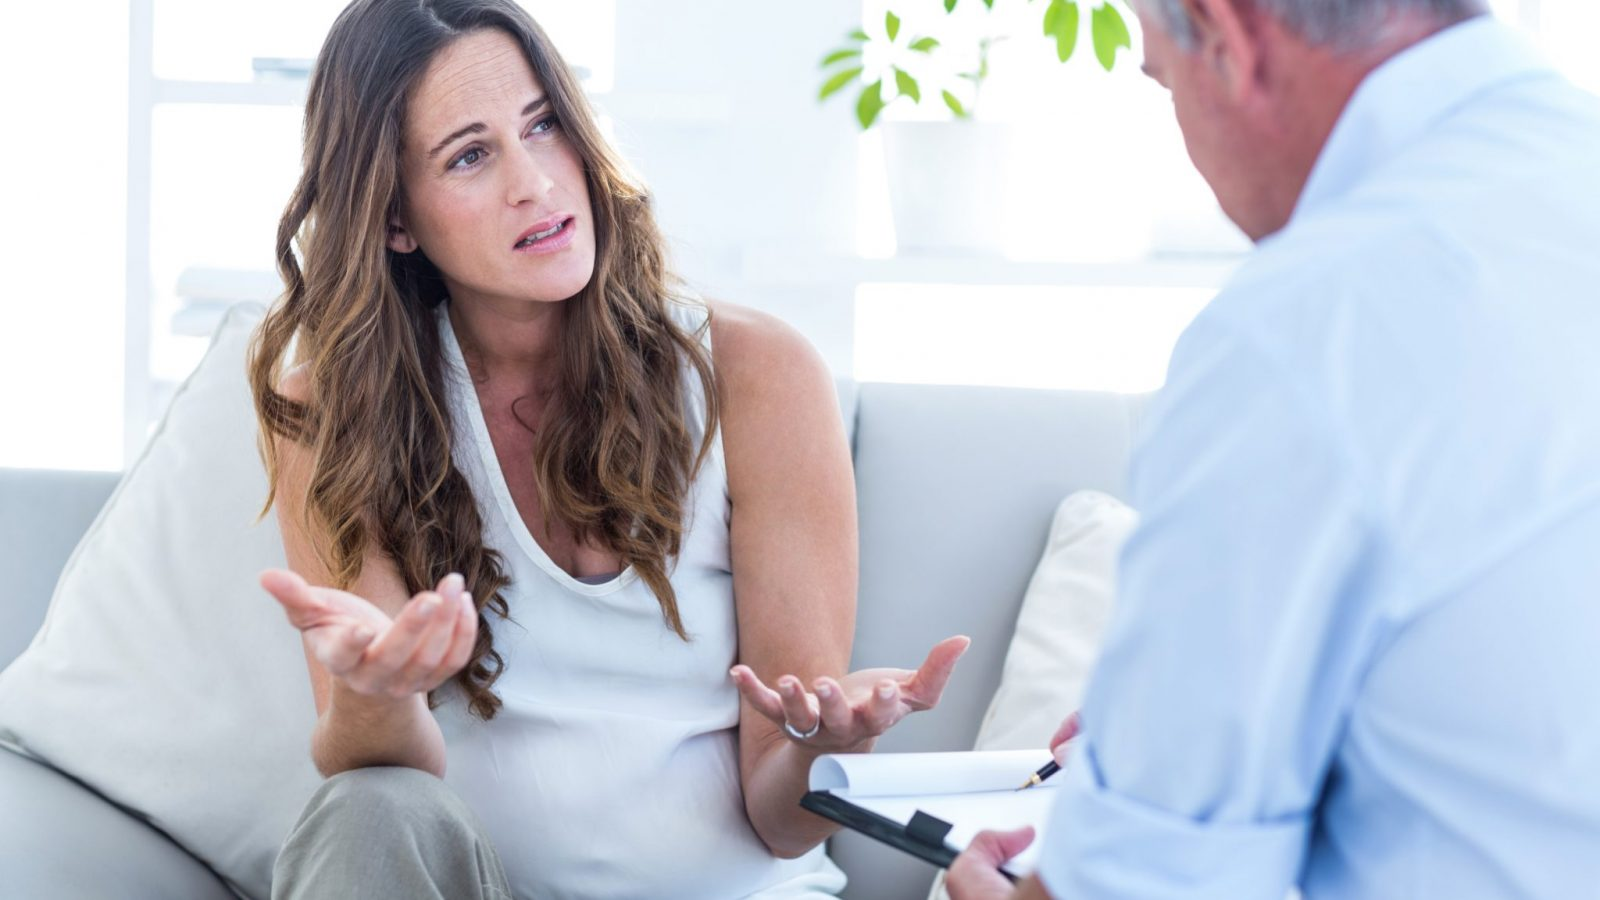 Pregnant woman finding out she has Group B Strep